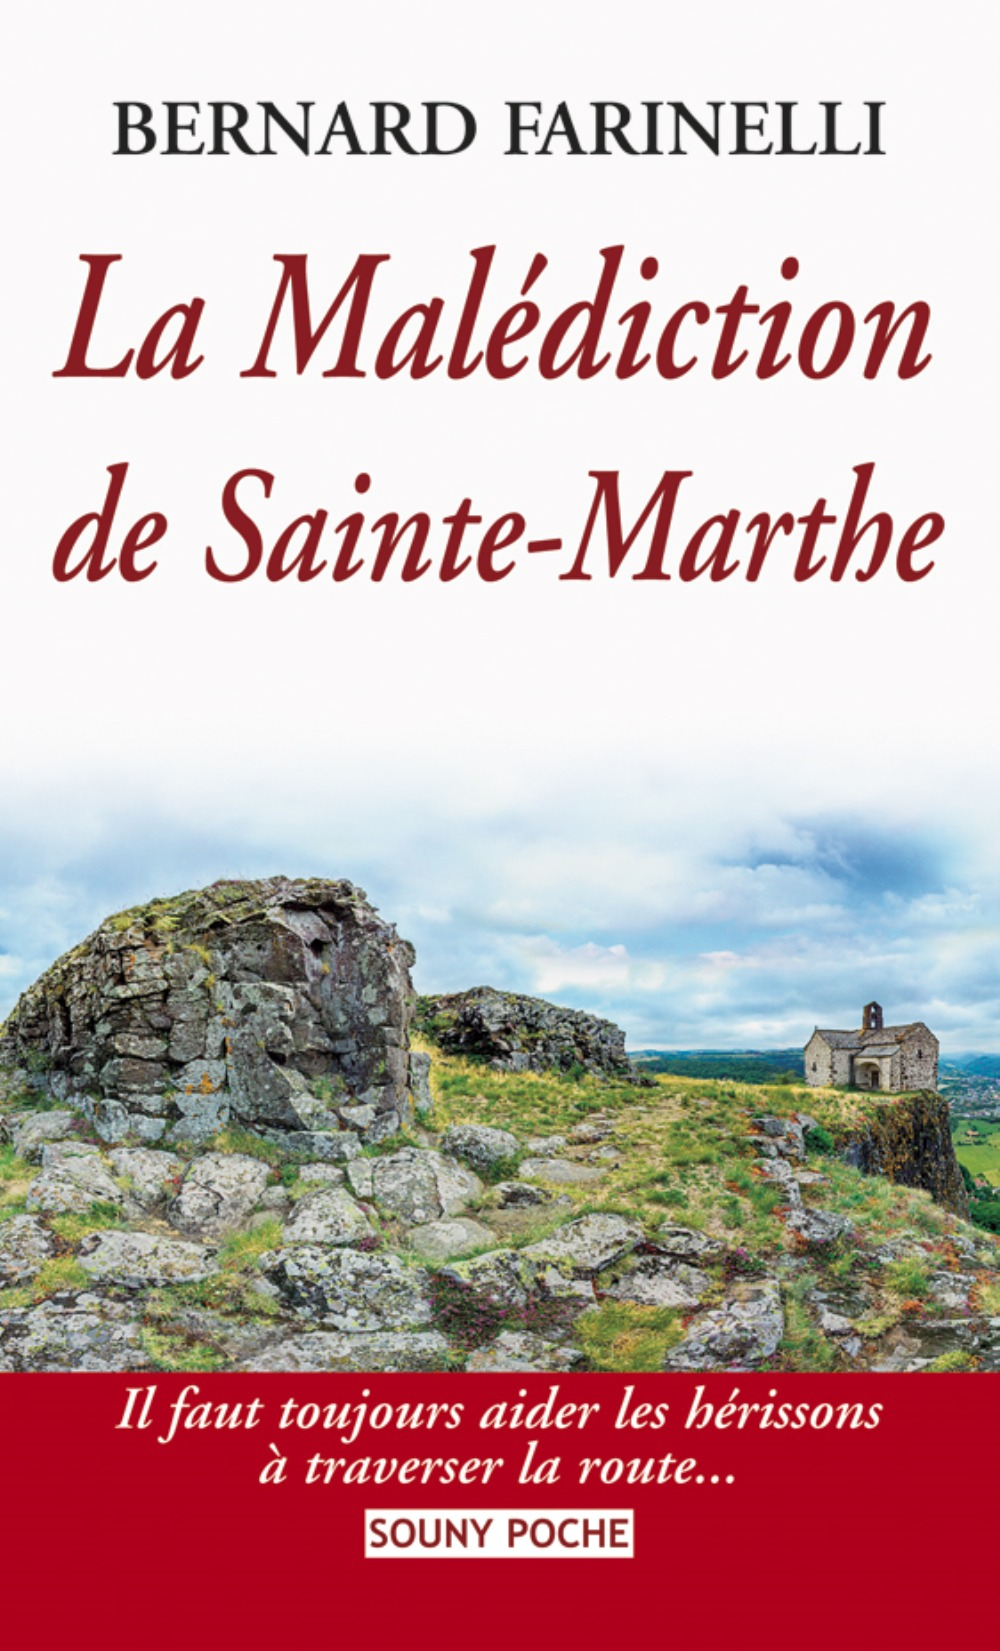 MALEDICTION DE SAINTE-MARTHE